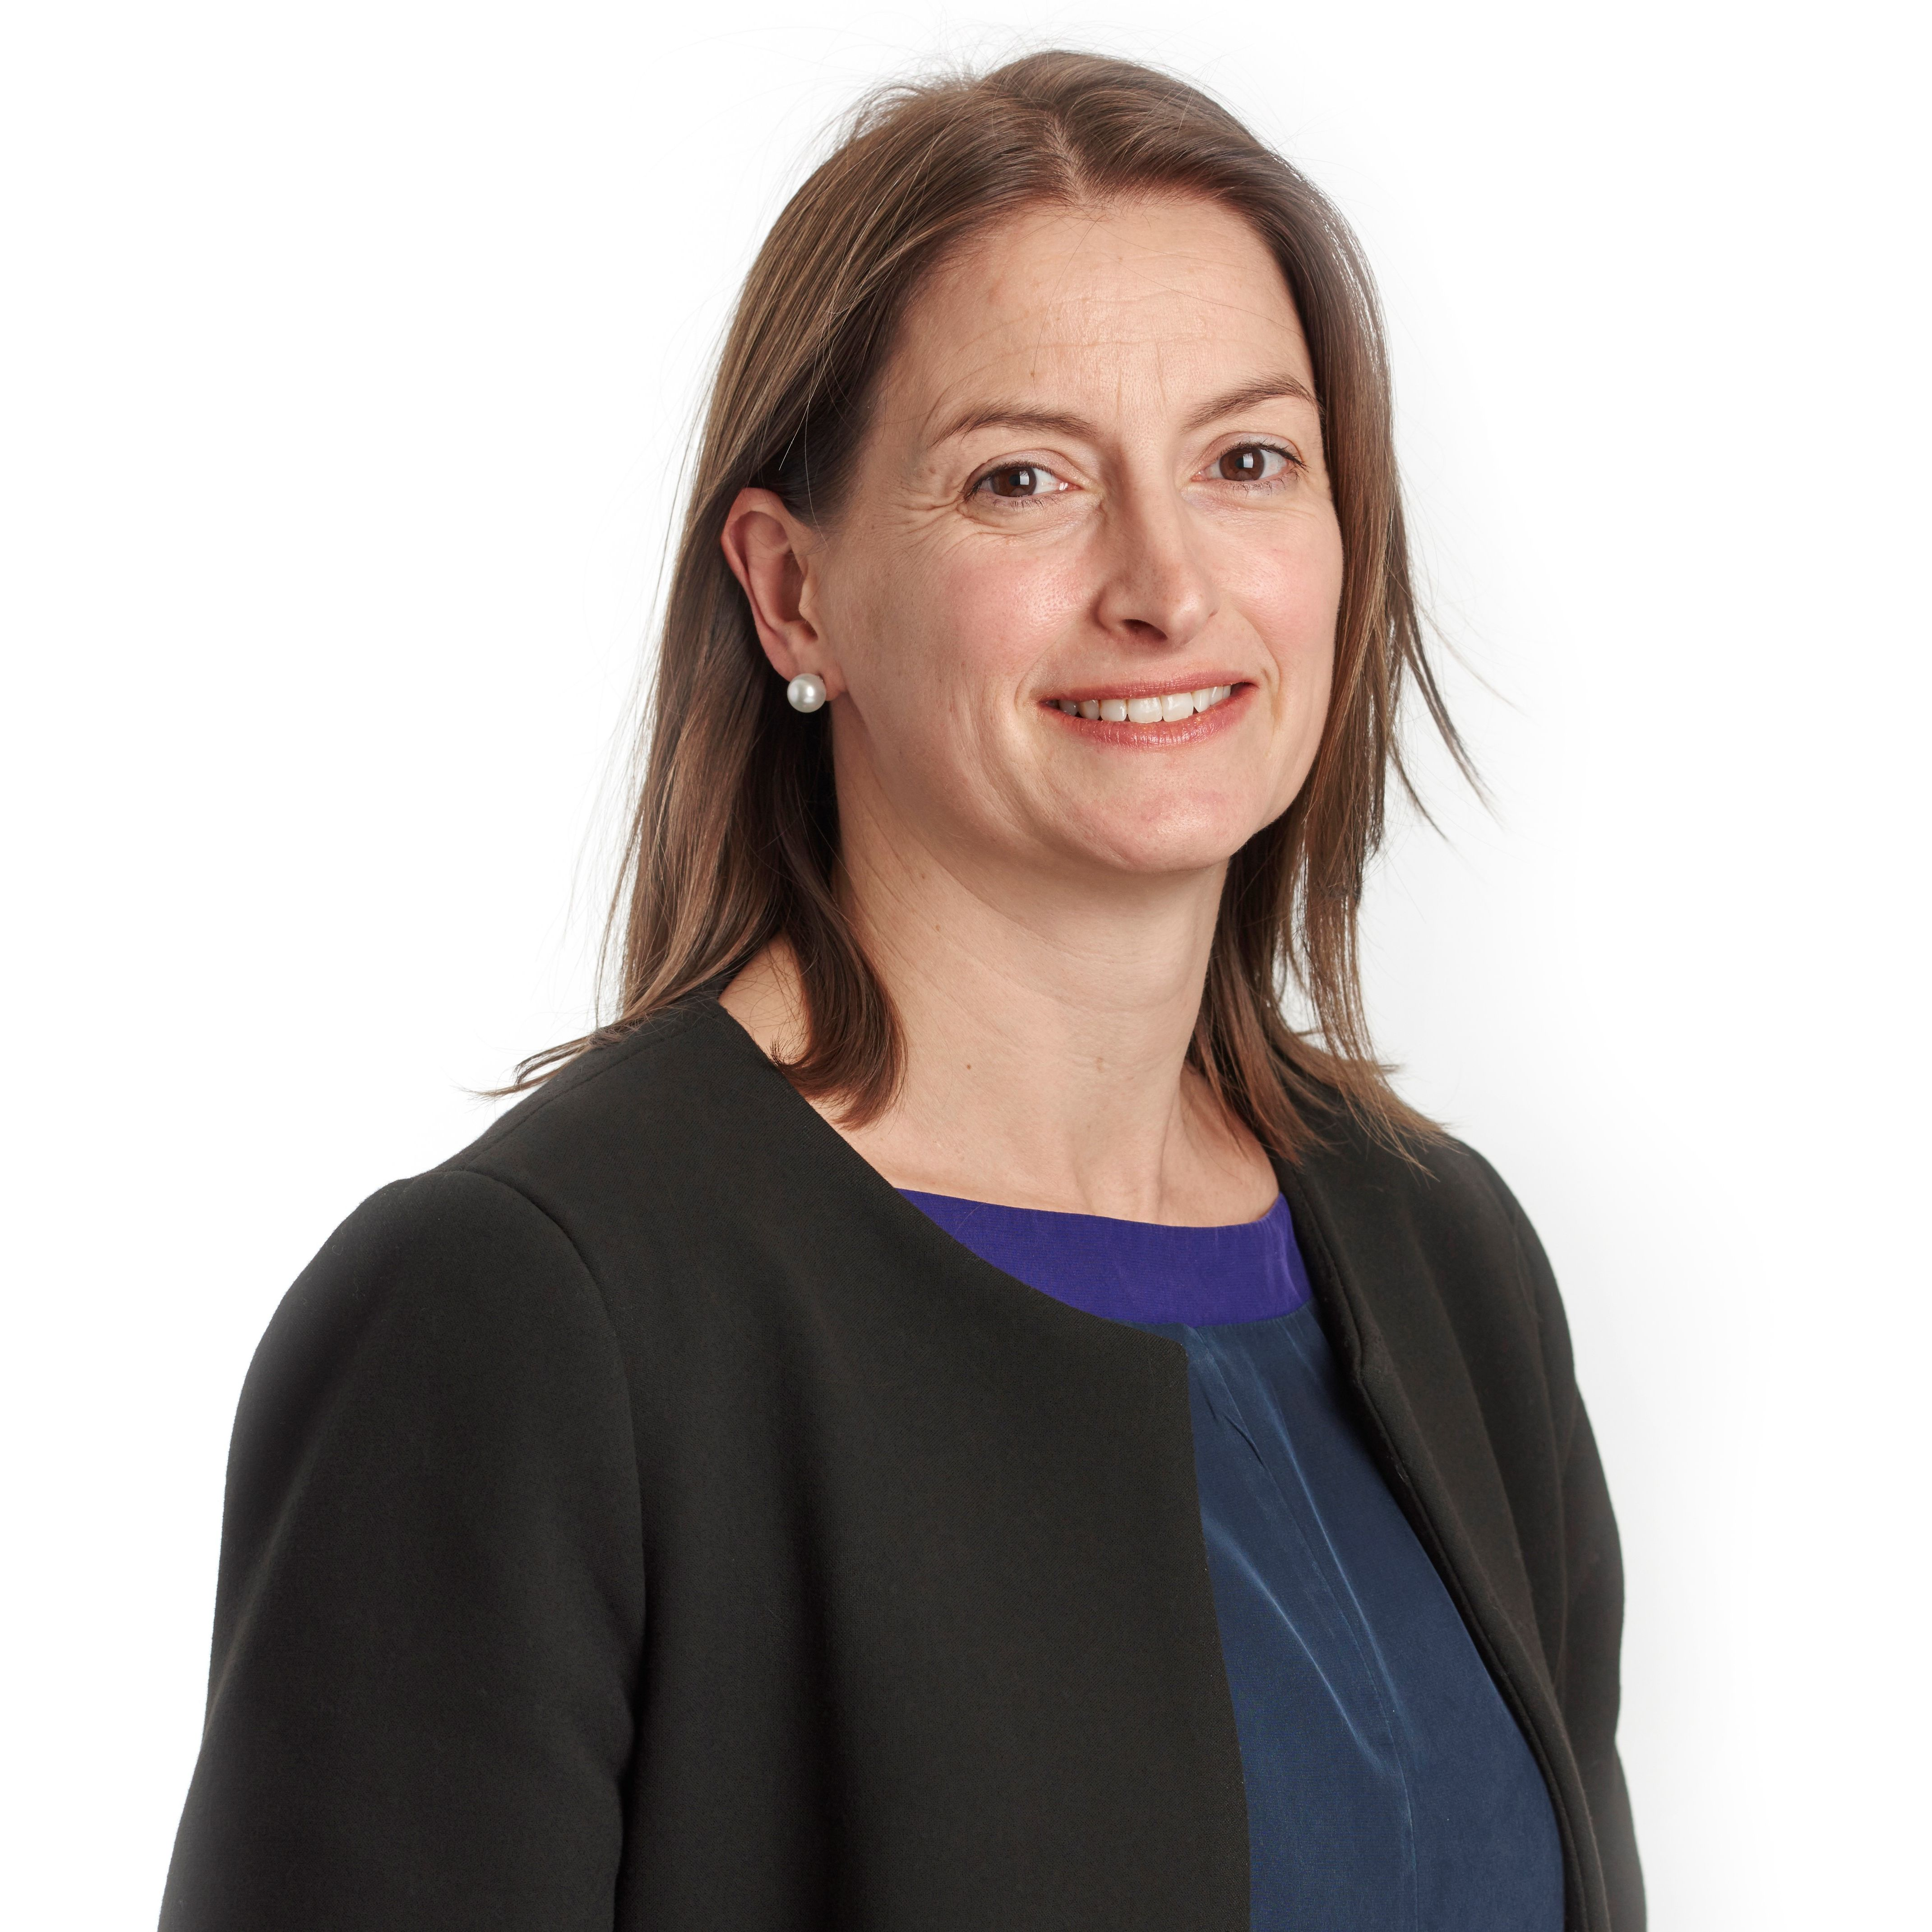 Profile photo of Penny Ladkin-Brand, Chief Strategy Officer at Future